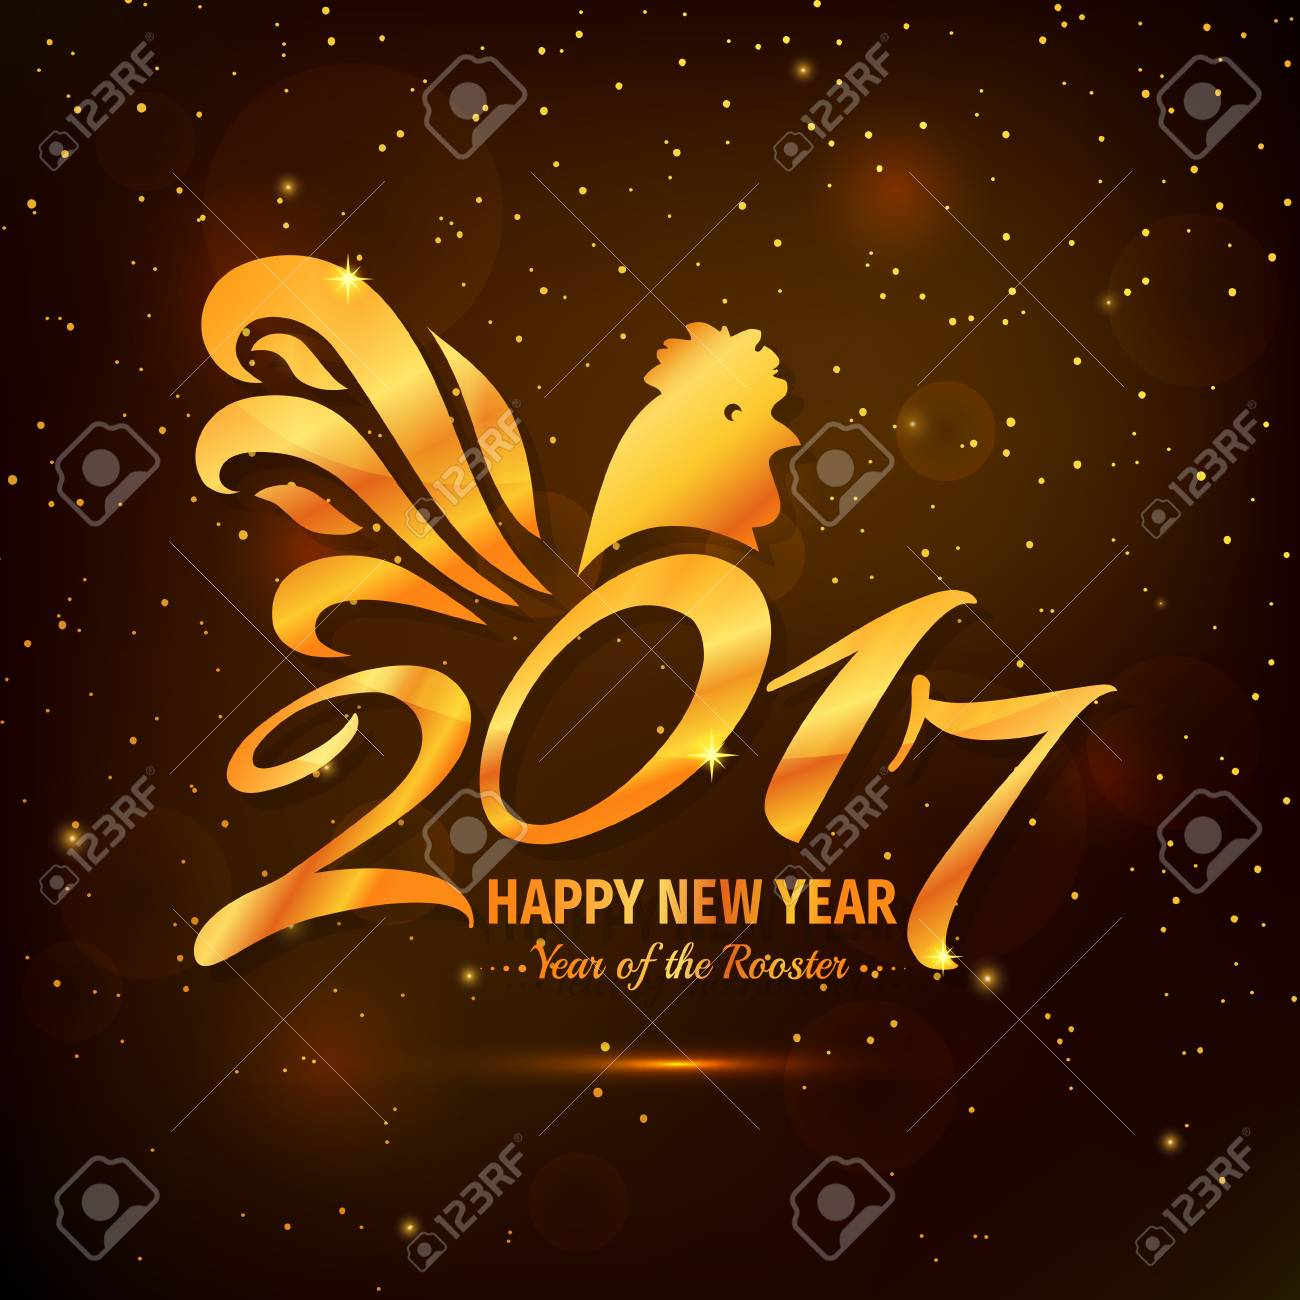 Happy New Year Greeting Card With Rooster Chinese Zodiac 2017